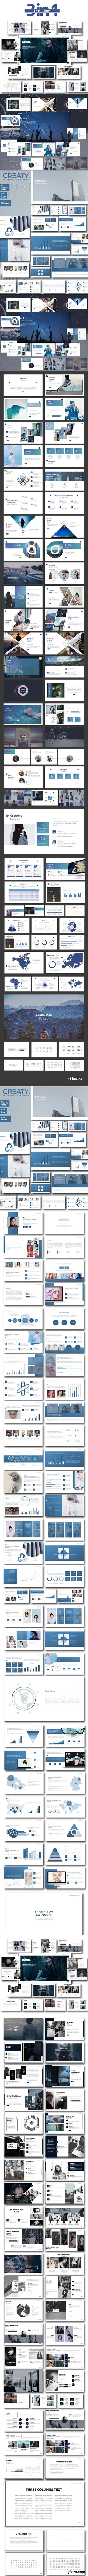 GraphicRiver - 3 in 1 Frist Bundle Powerpoint 22236203